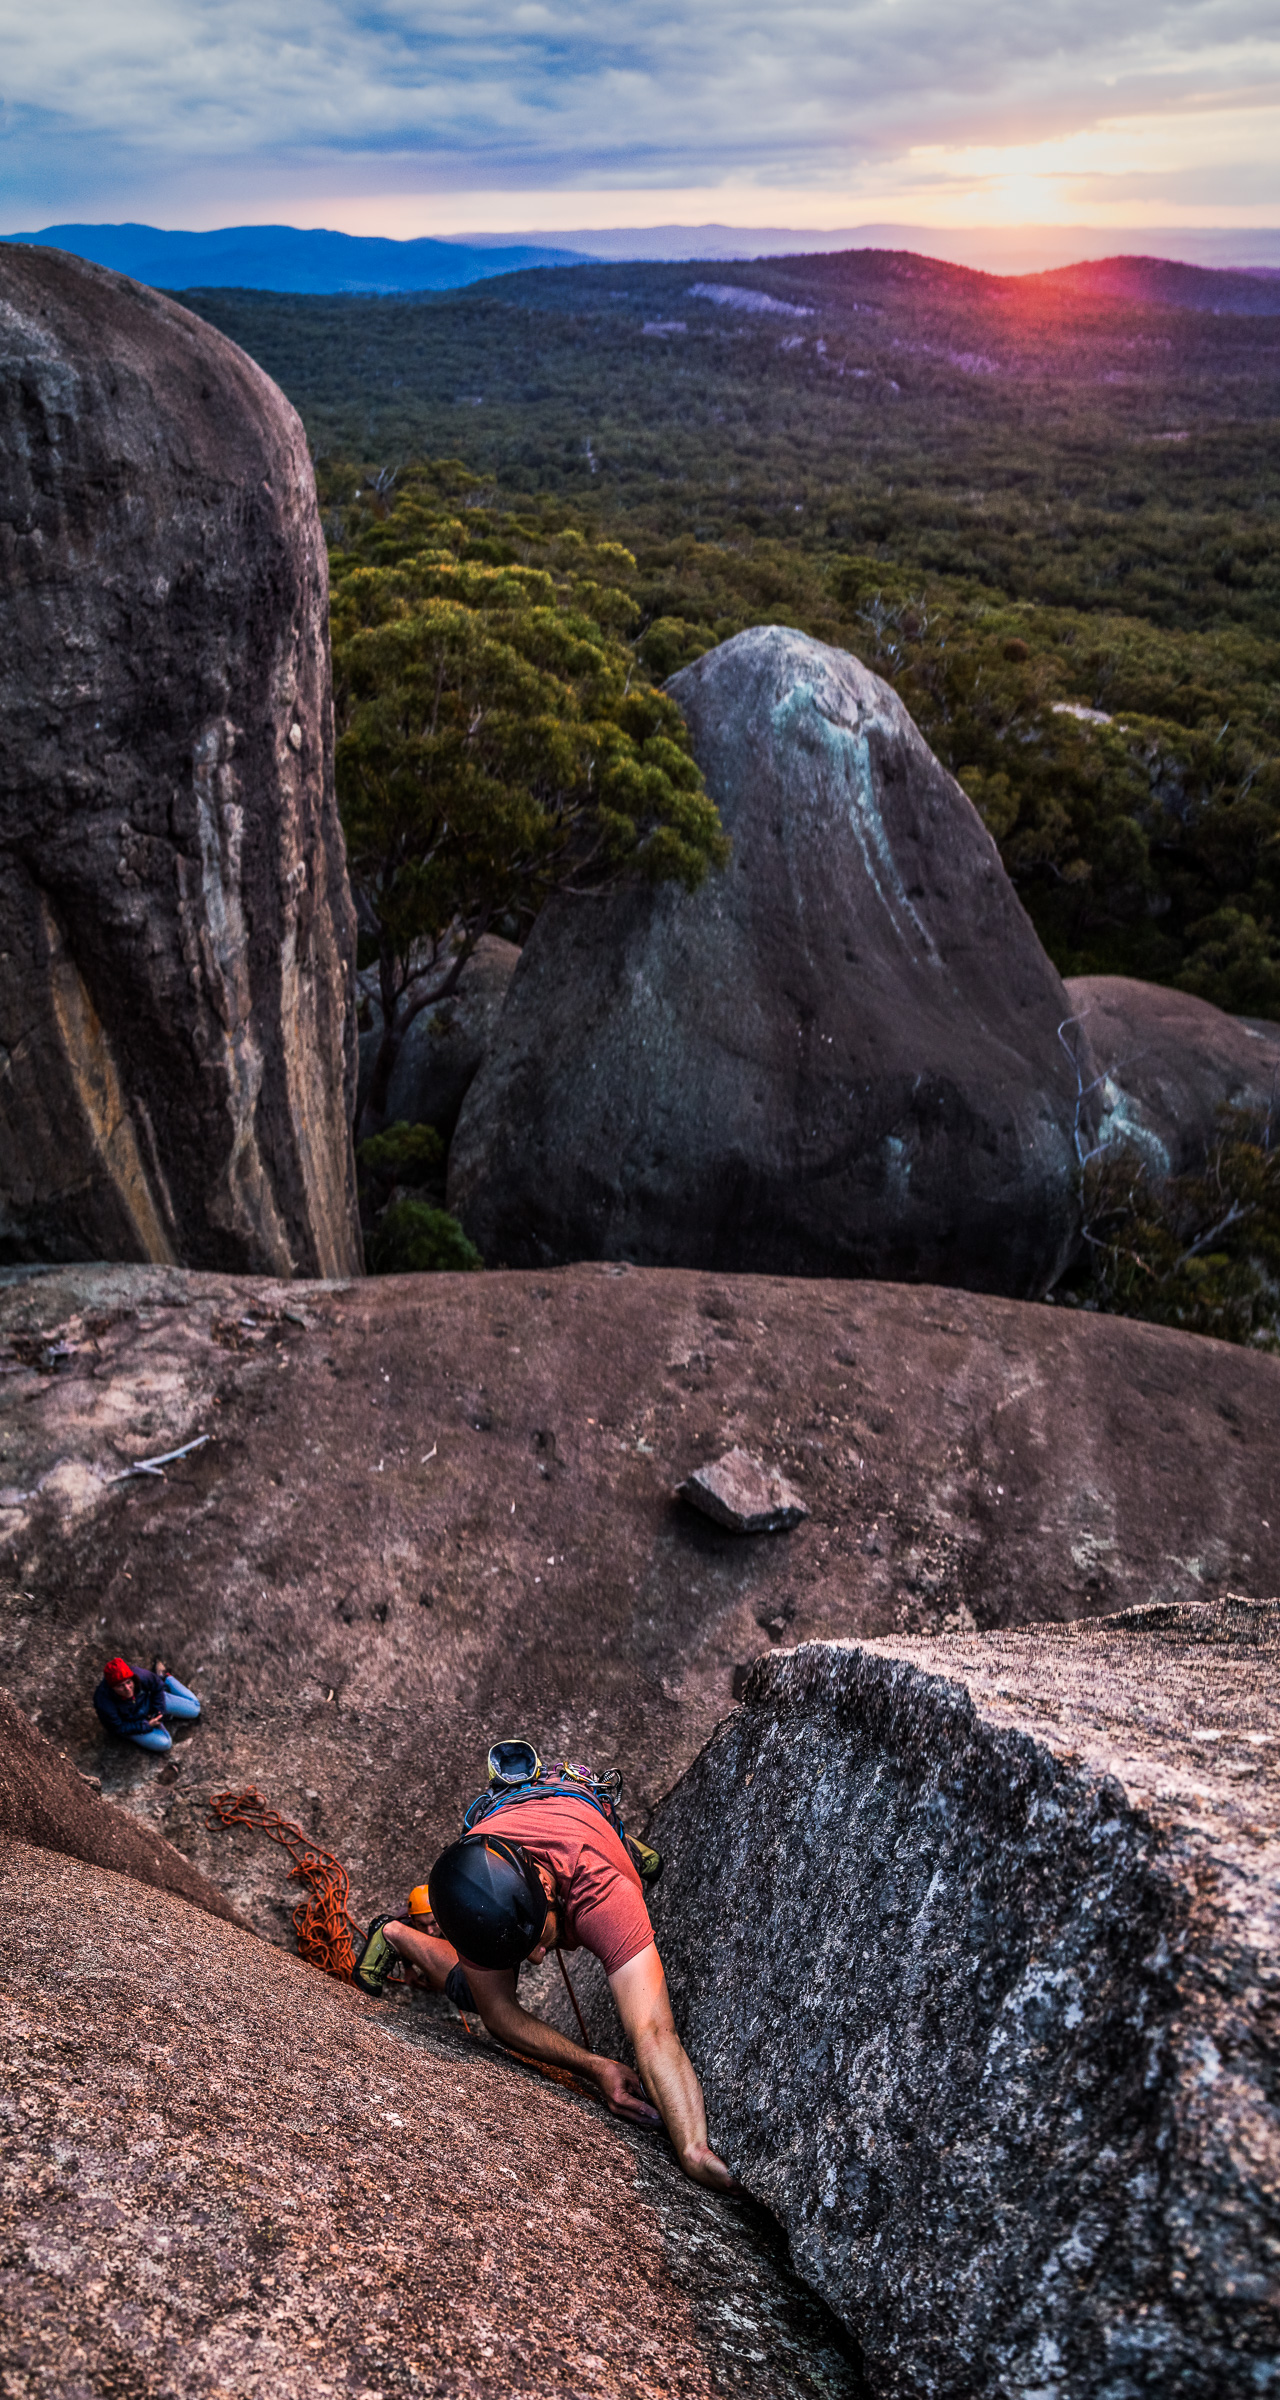 Last Climb of the Day by Lachlan Gardiner